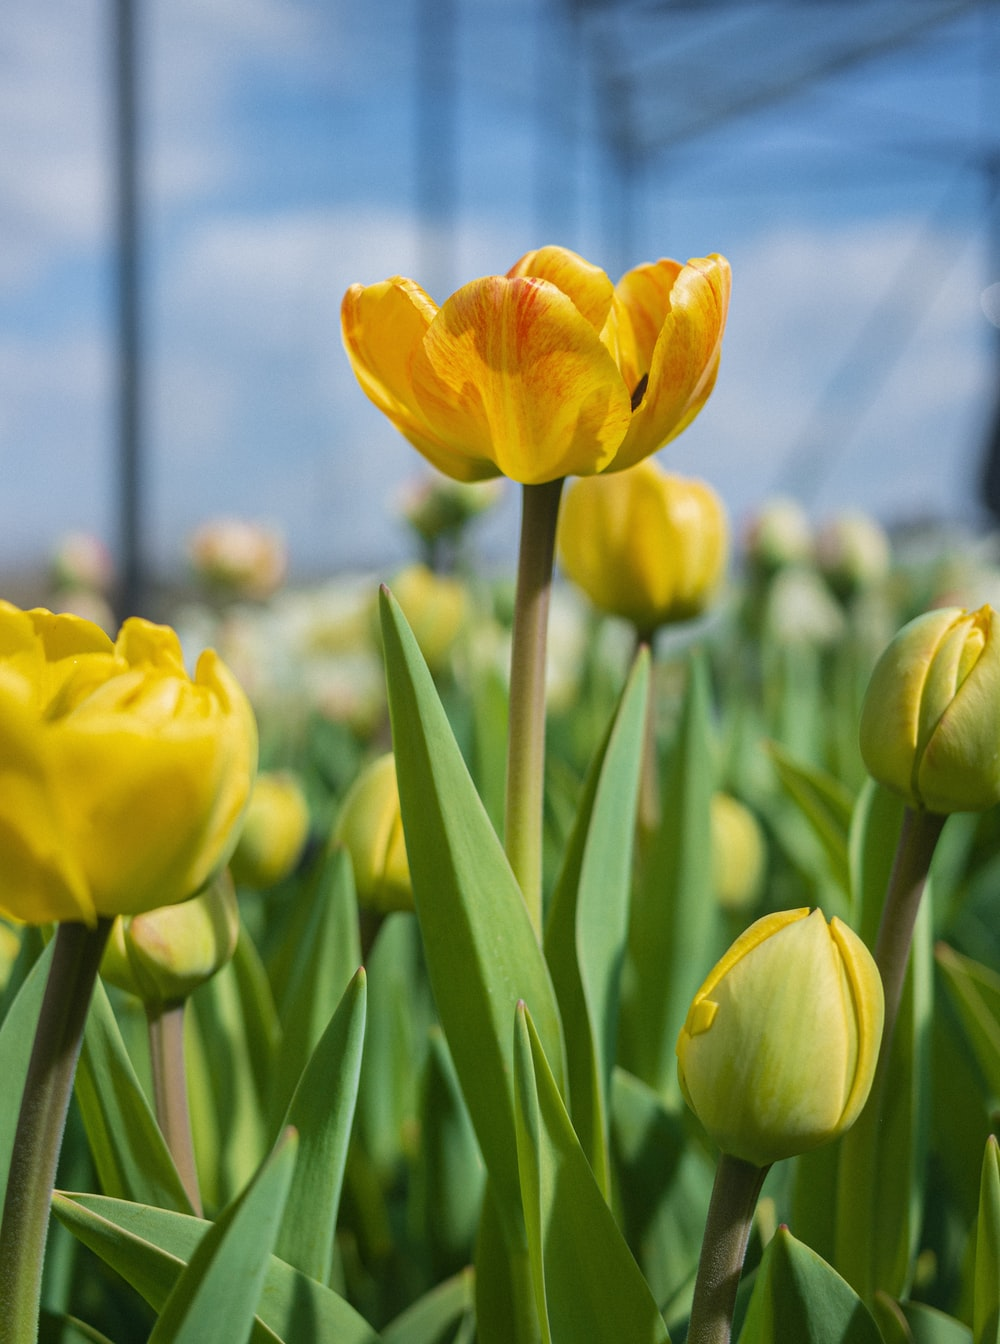 yellow tulips in bloom during daytime